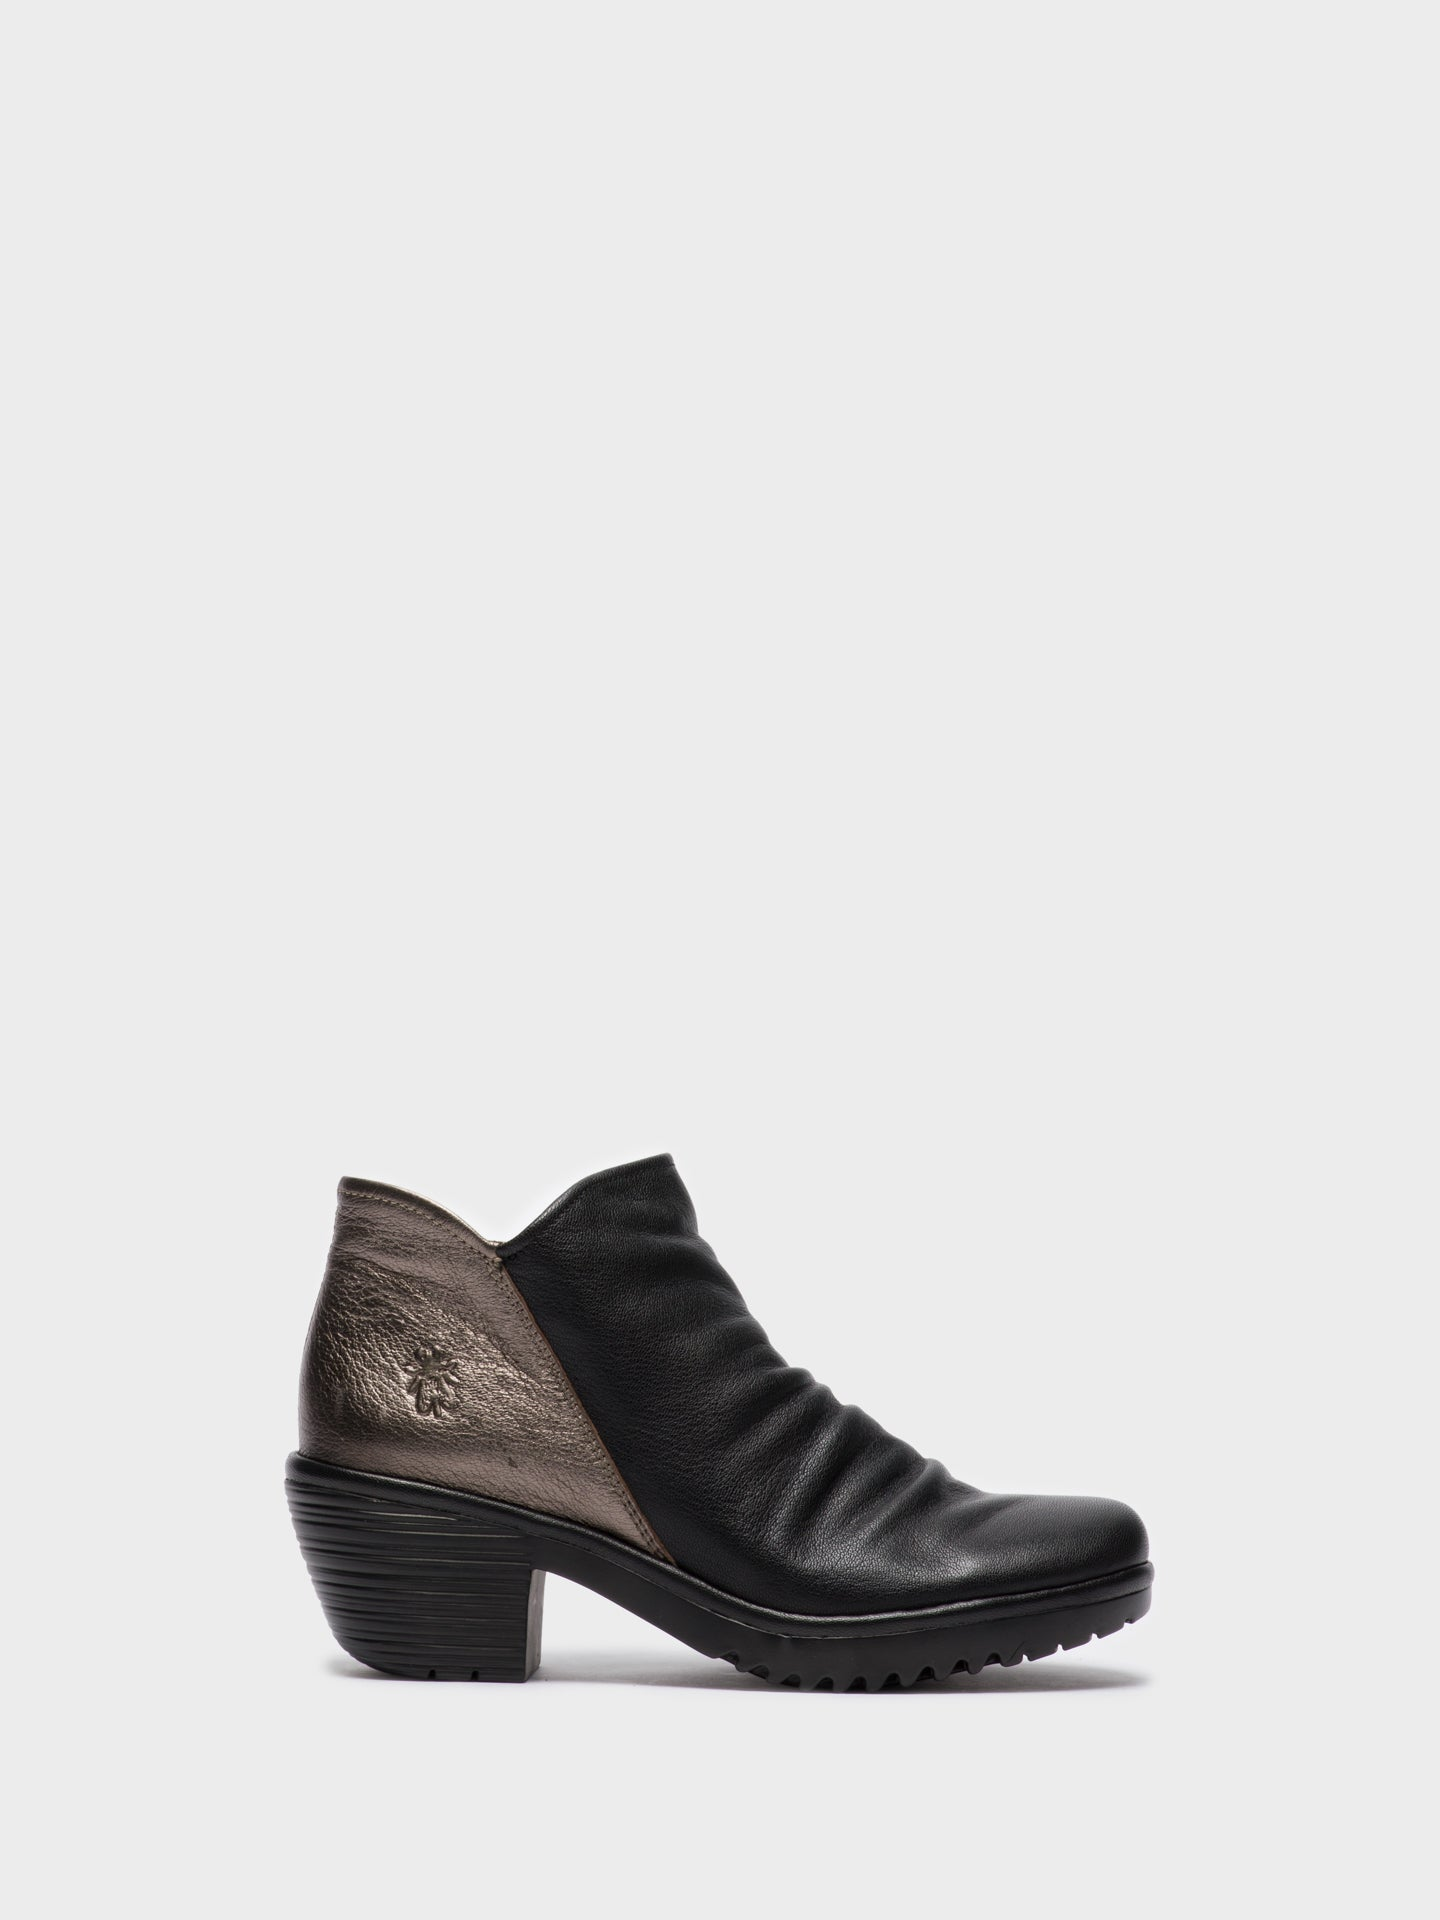 Fly London Brown Black Zip Up Ankle Boots